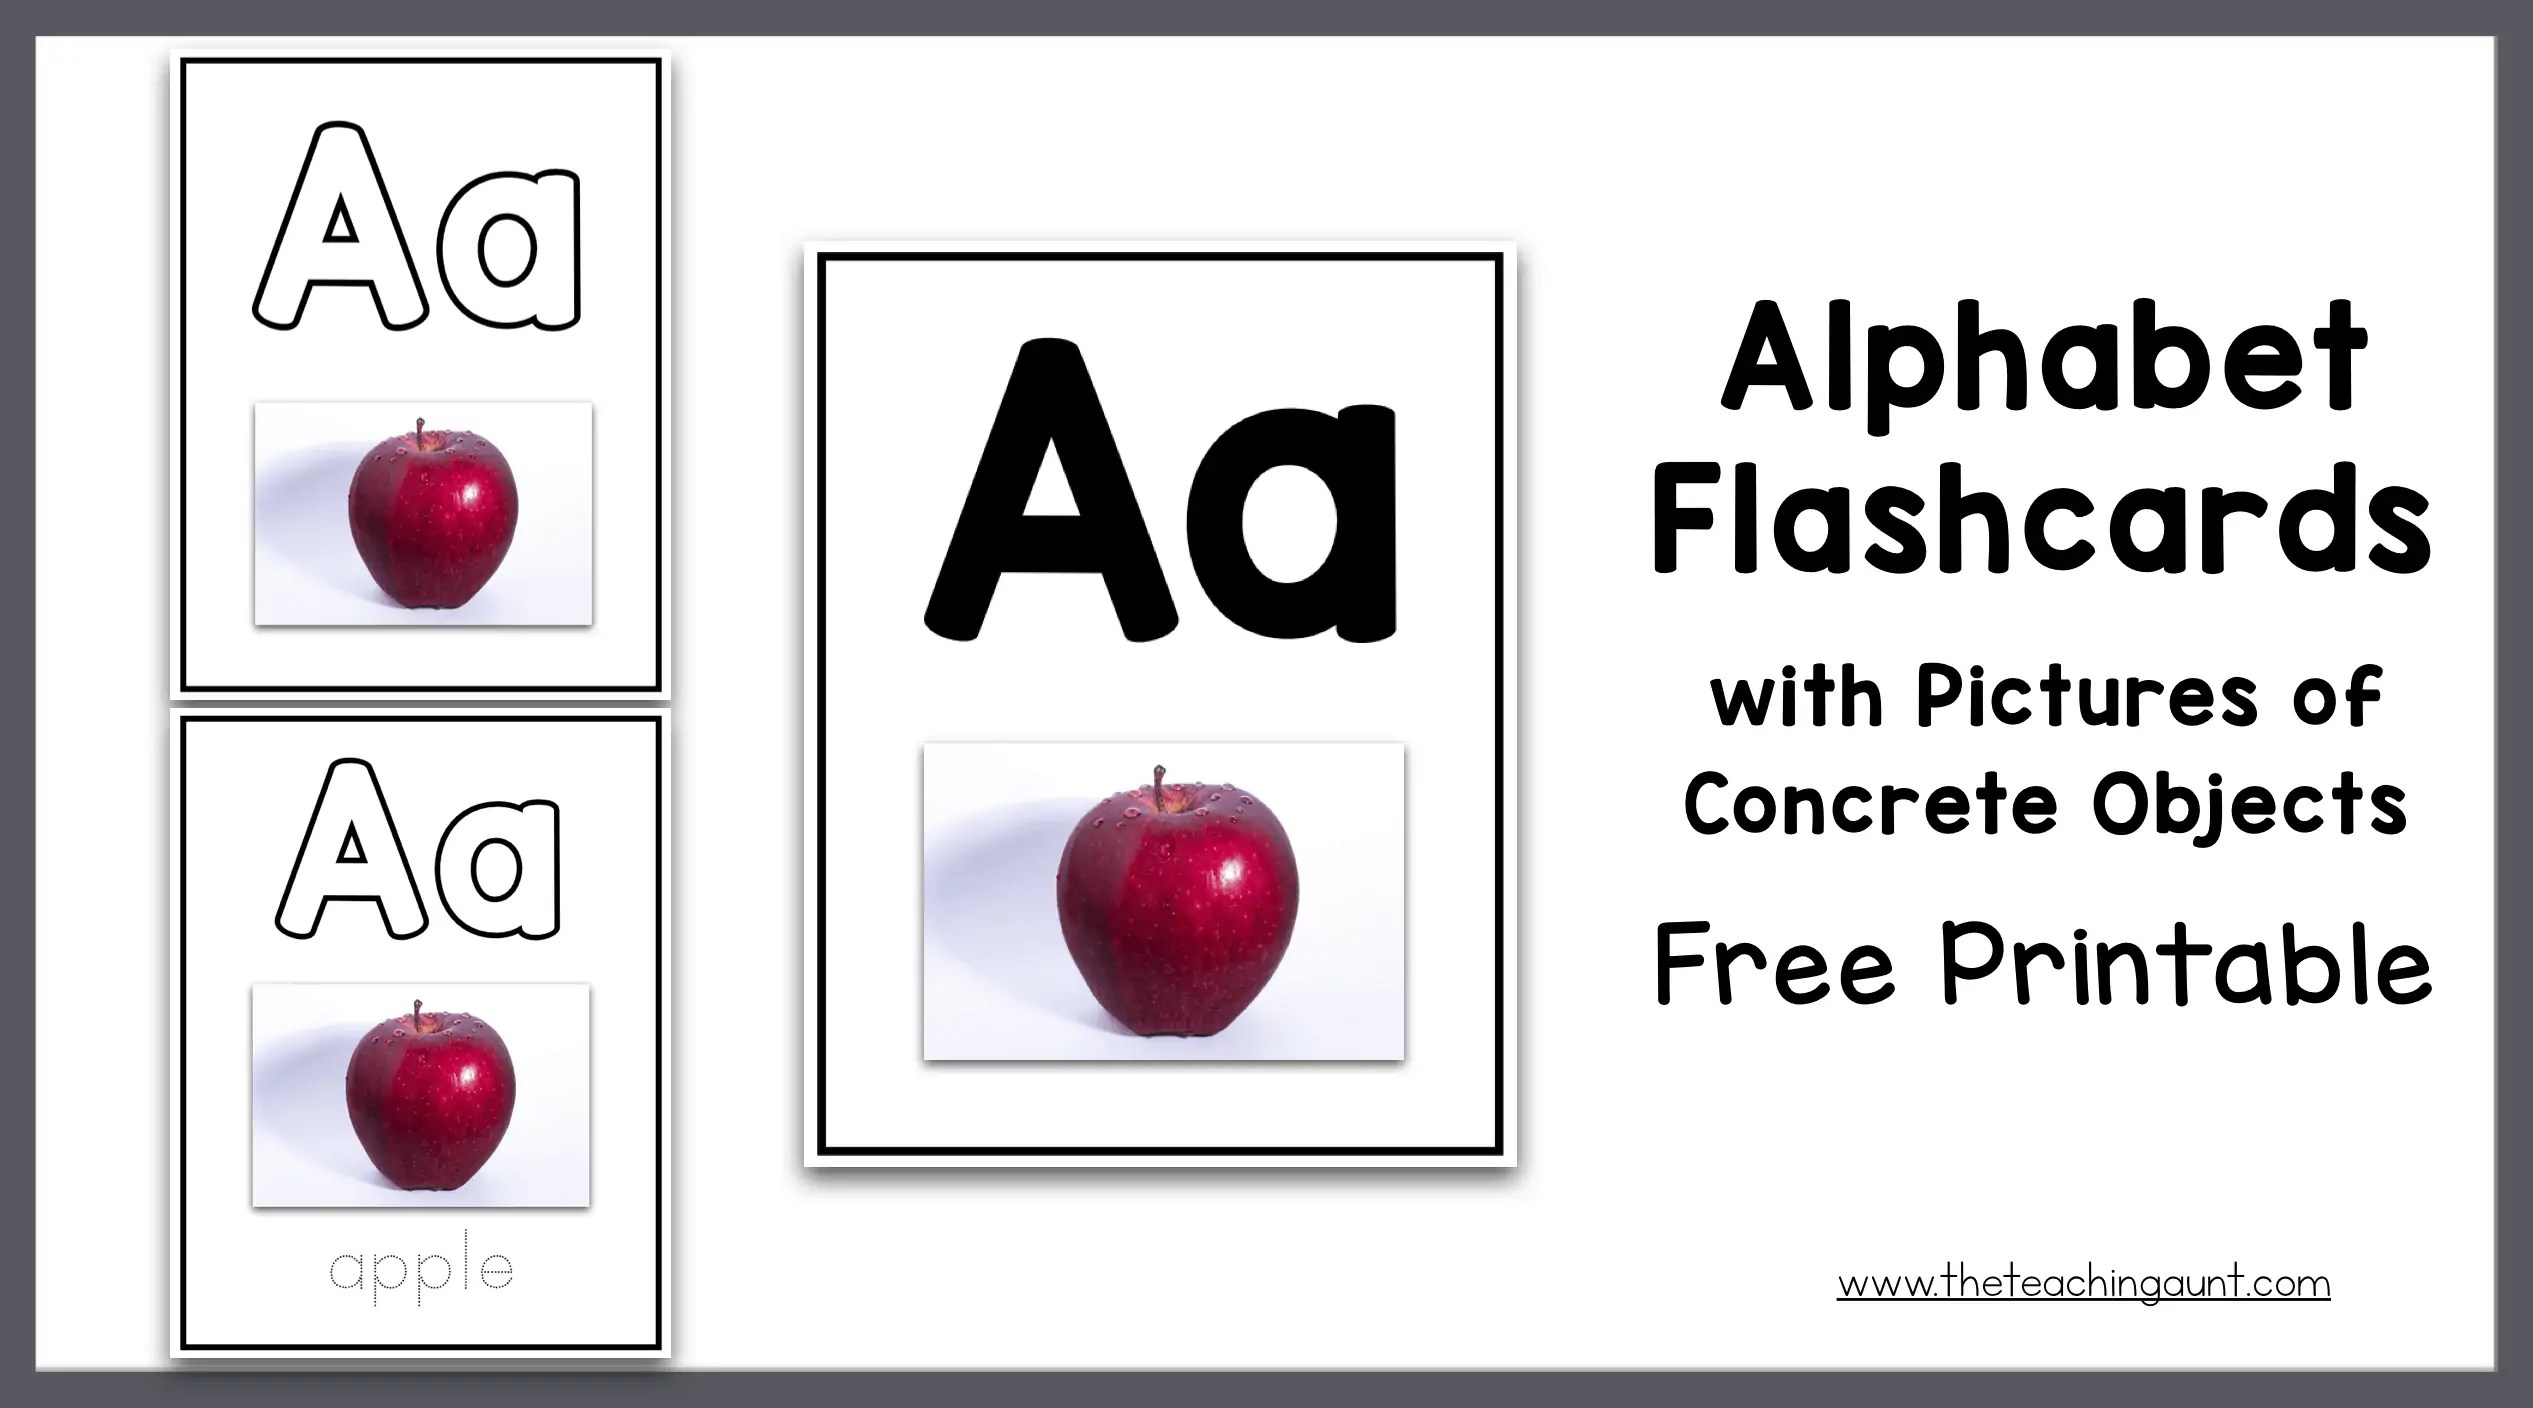 photo about Abc Flash Cards Free Printable named Alphabet Flashcards with Shots of Concrete Goods - The